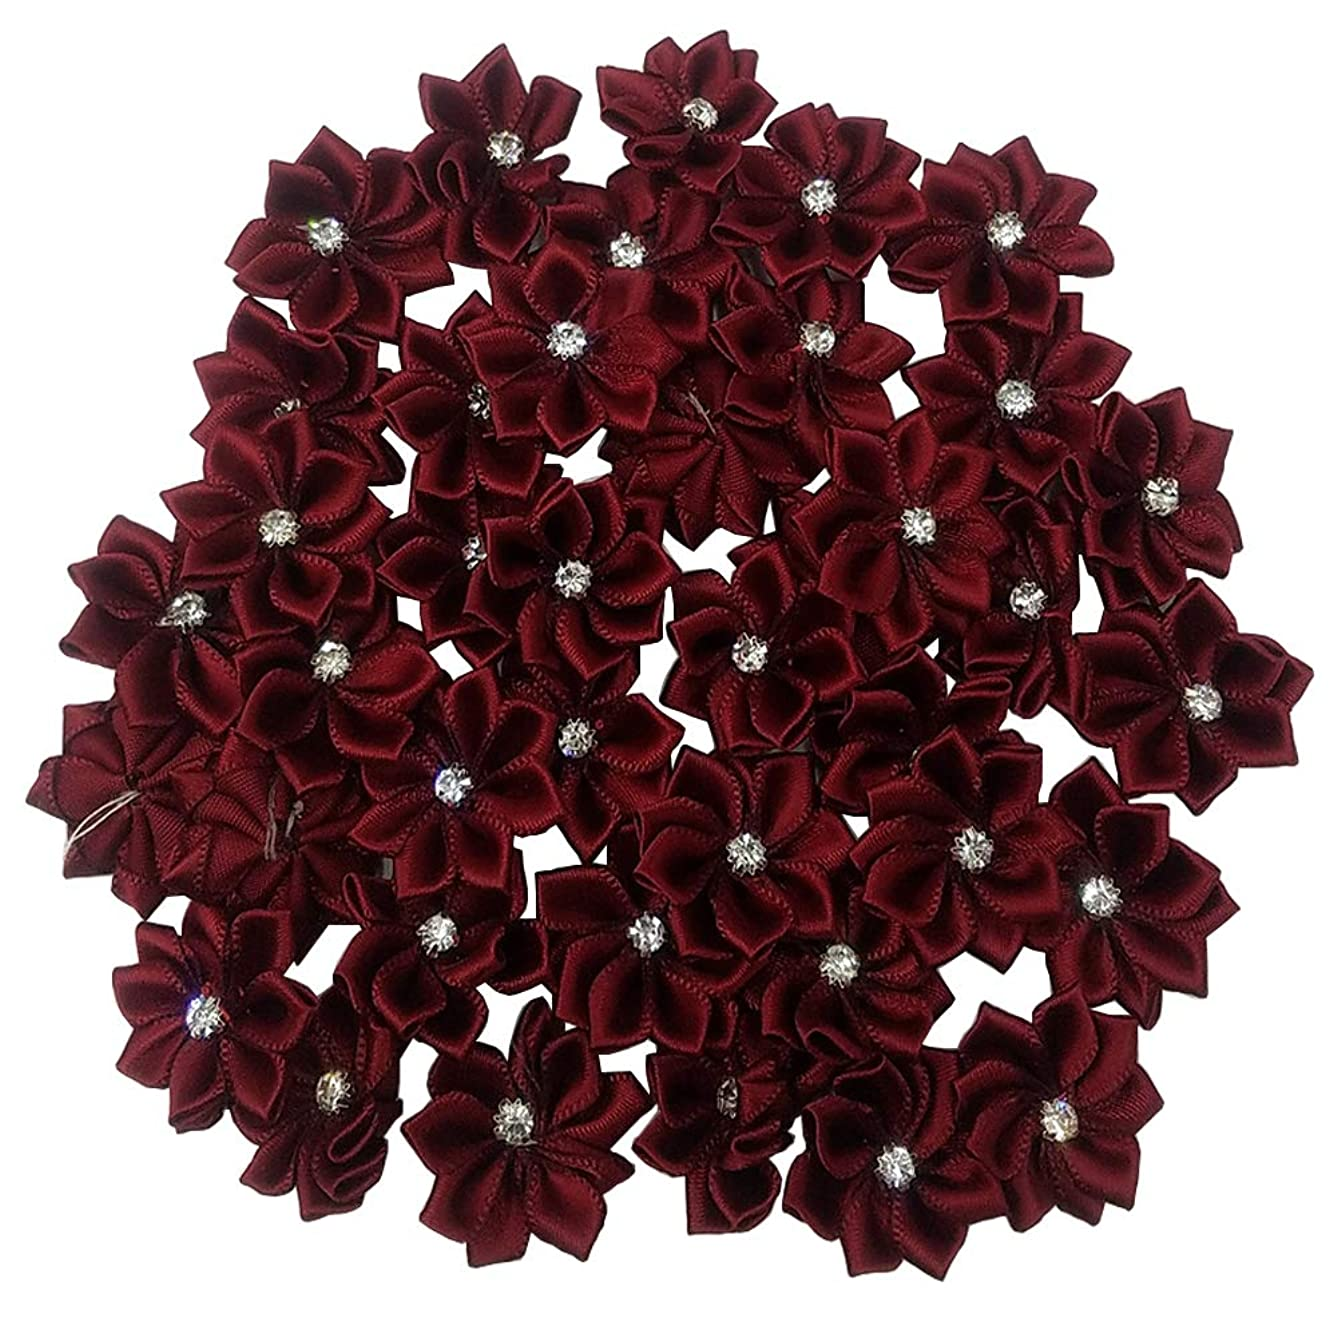 Tianying 40 Pack Satin Ribbon Flowers Bows 1.1in Rhinestones Party Weddng Supply Home Decor DIY Craft (Wine)